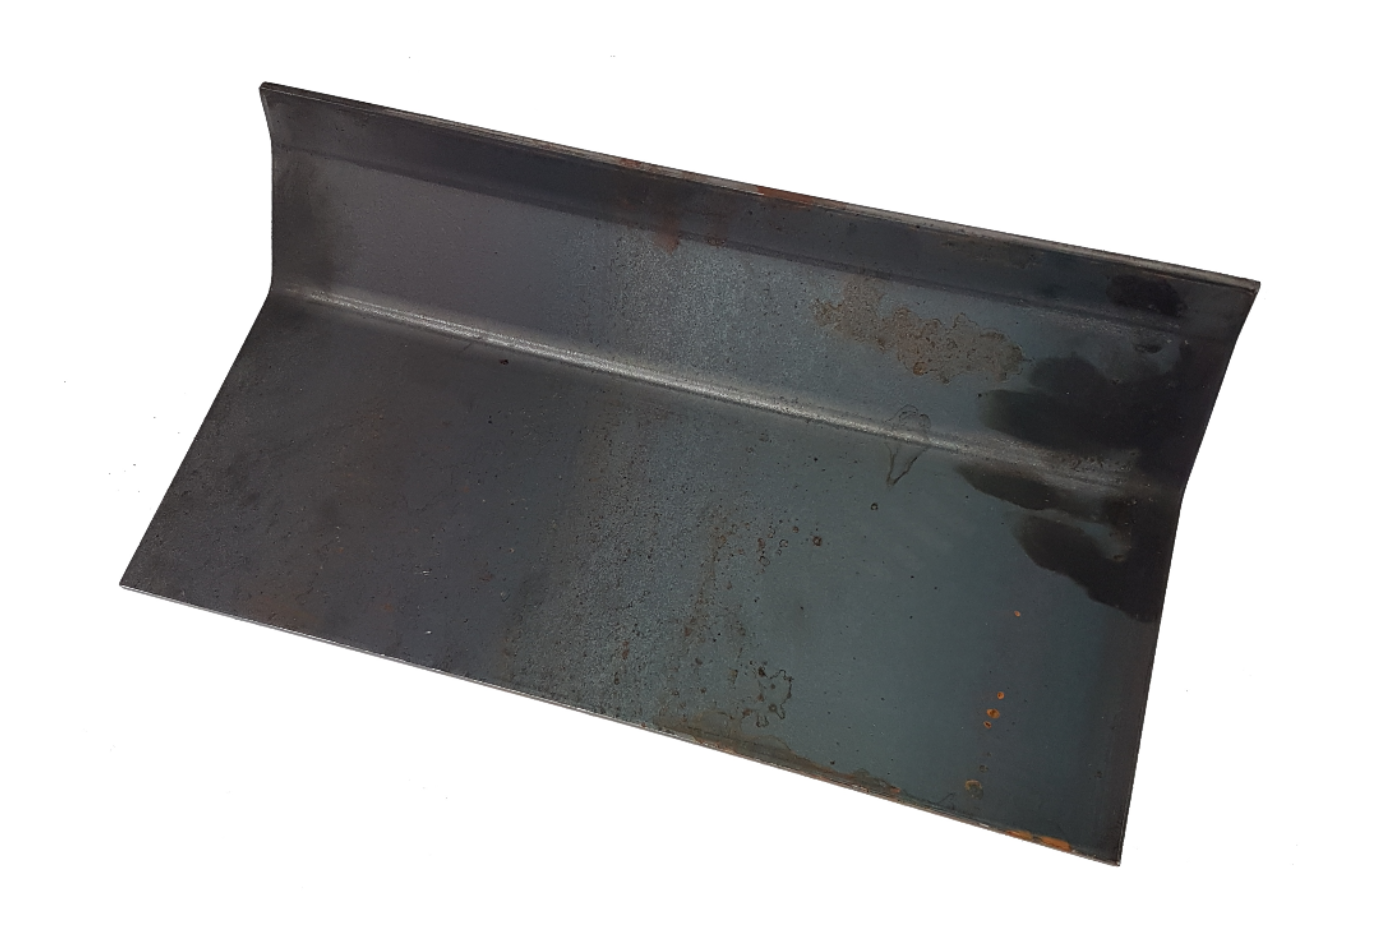 A replacement Baffle suitable for Stovax View 5 MK3 stoves.